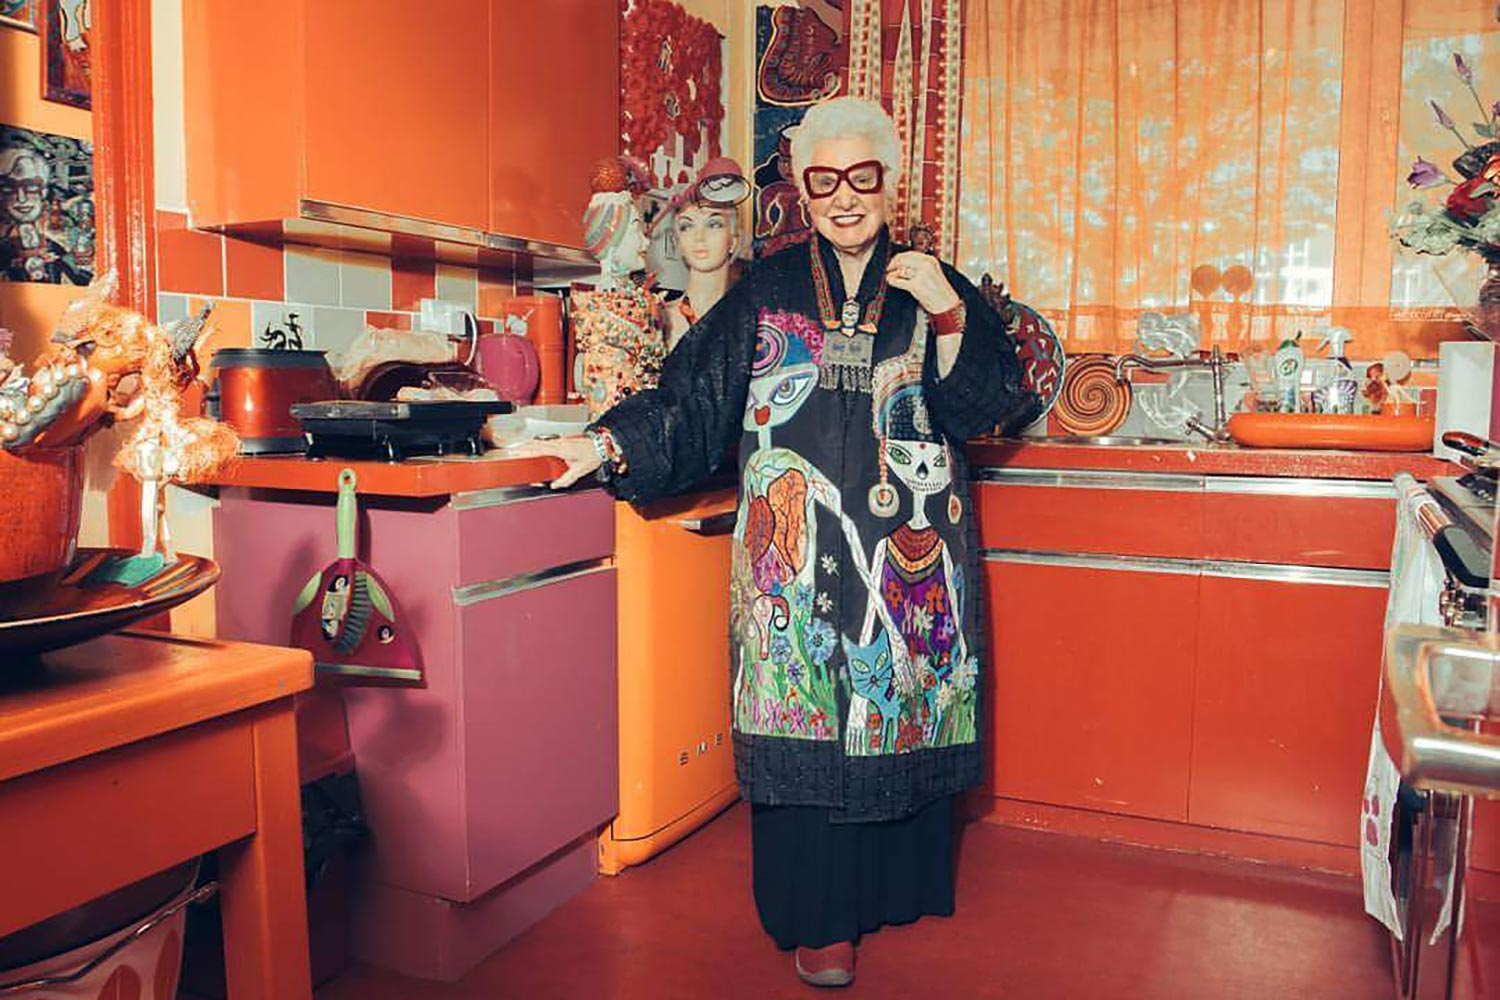 sue kreitzman standing in colourful kitchen